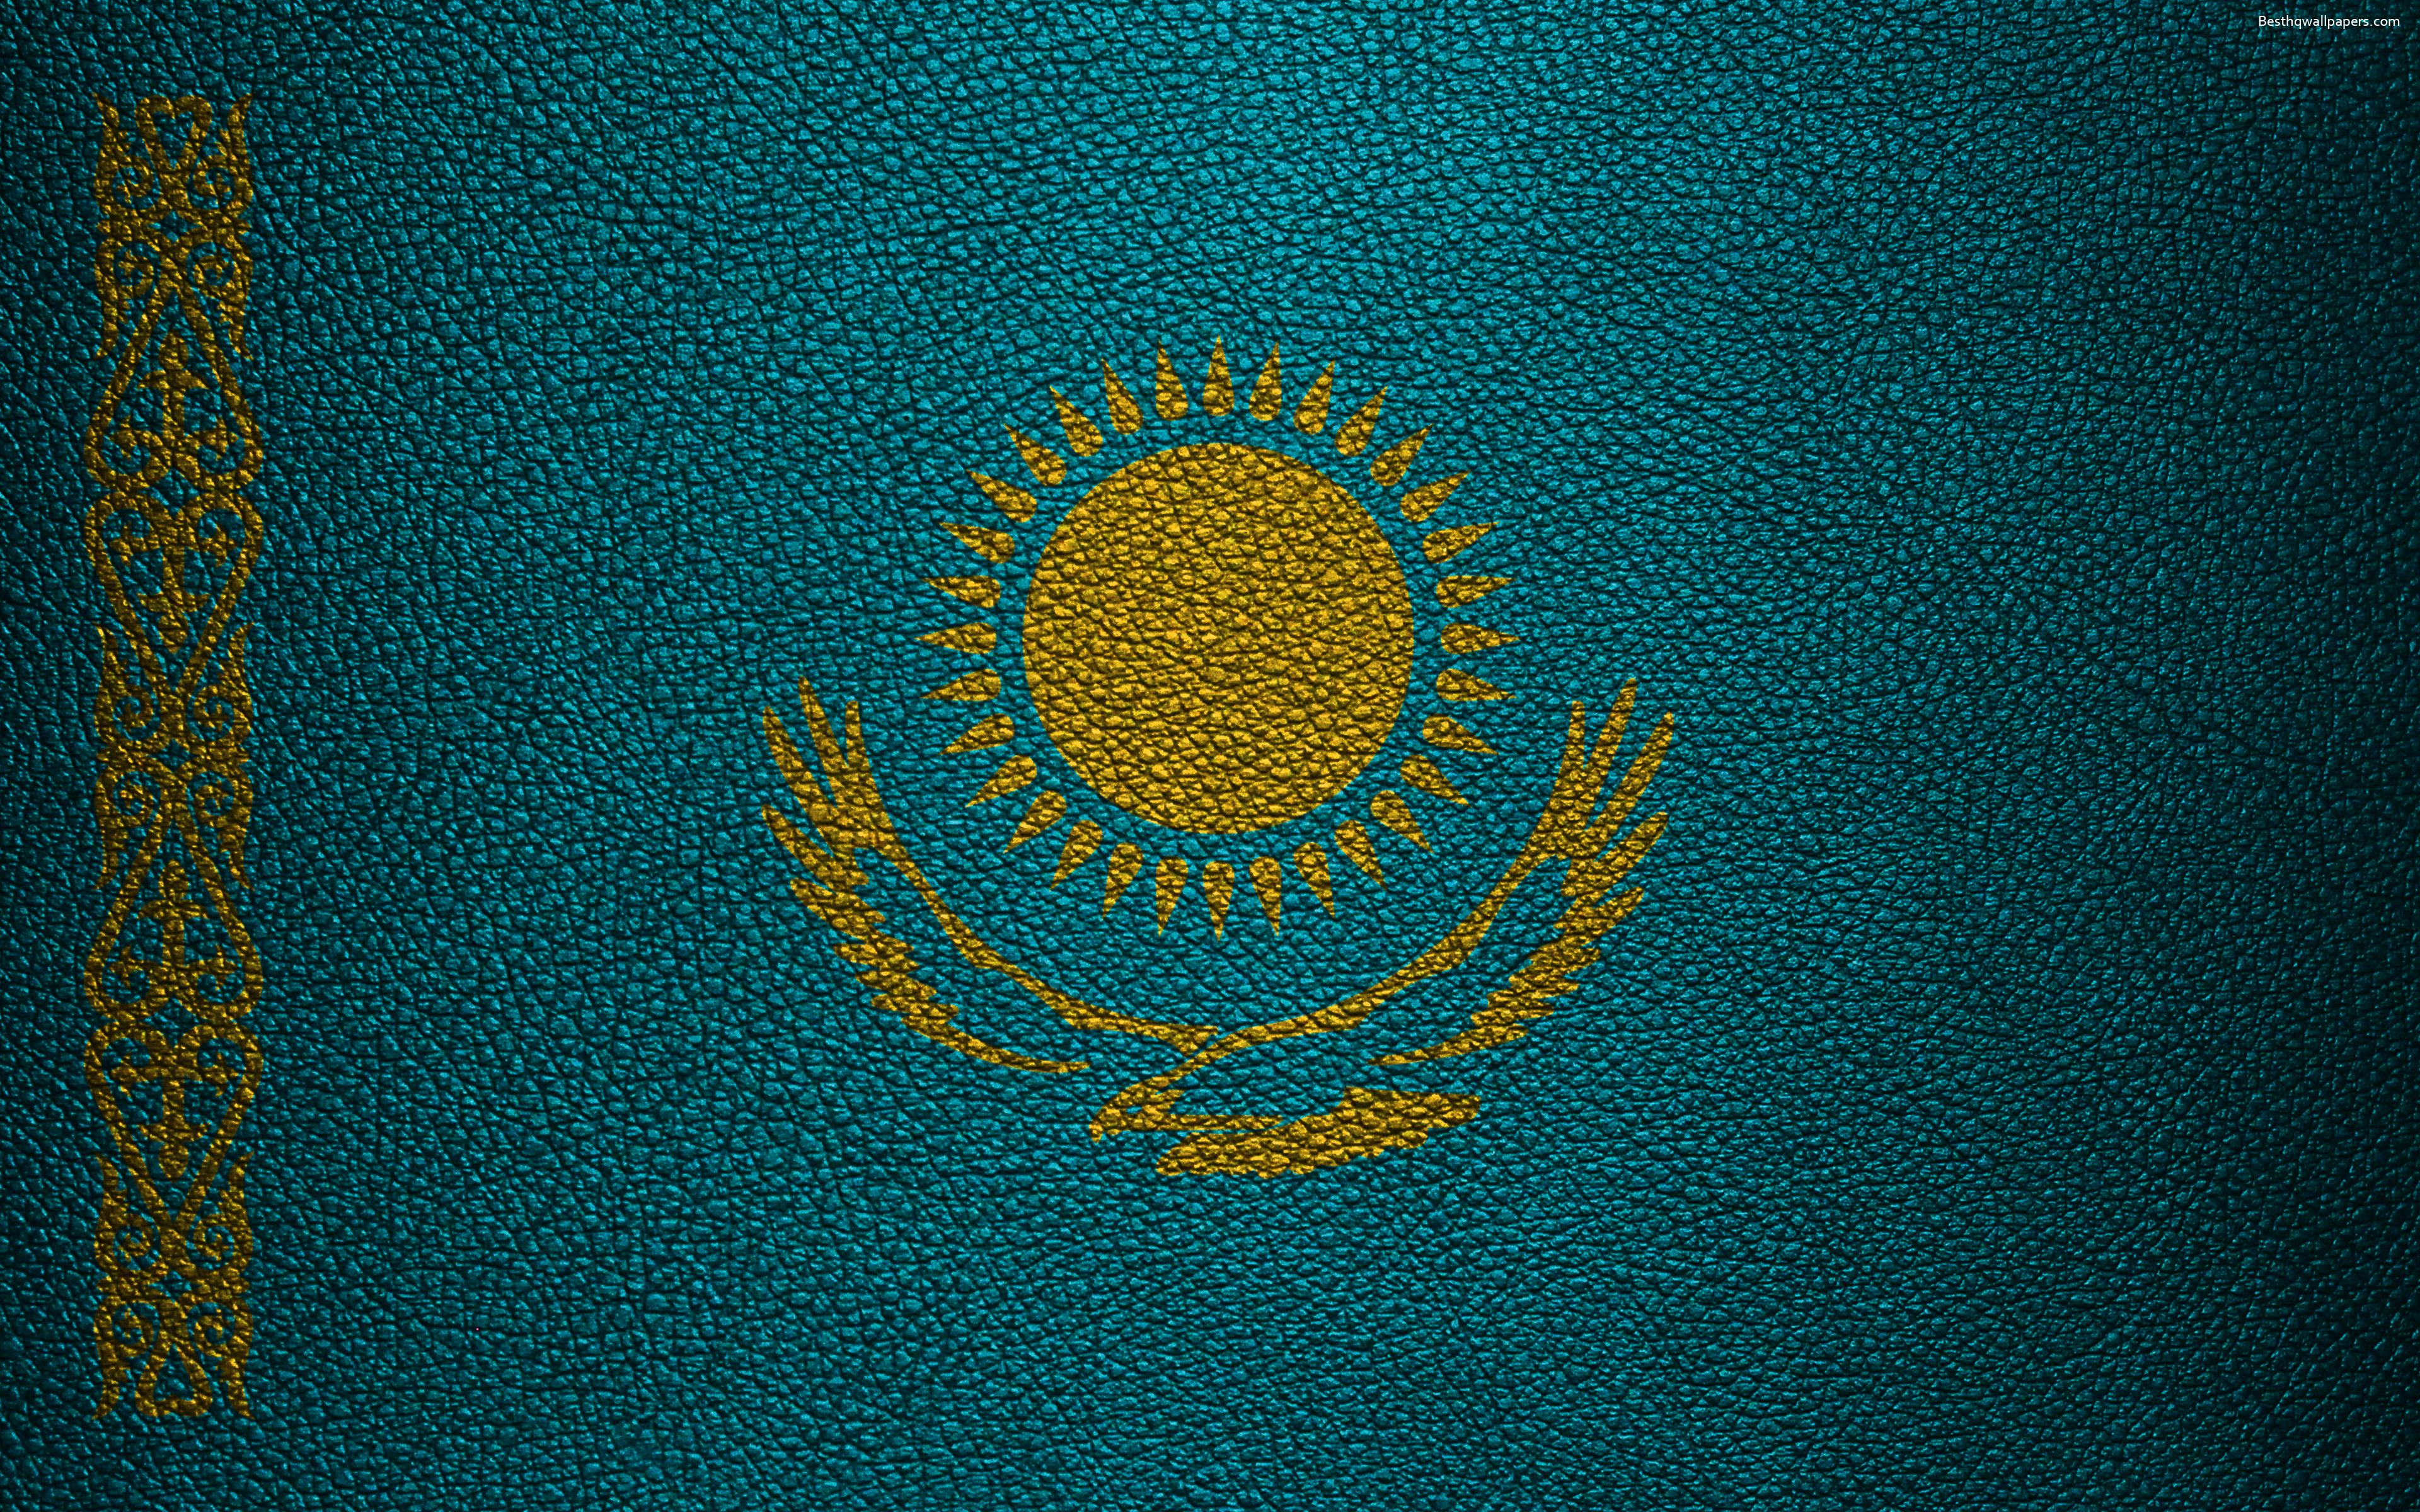 Download wallpapers Flag of Kazakhstan, 4k, leather texture ...